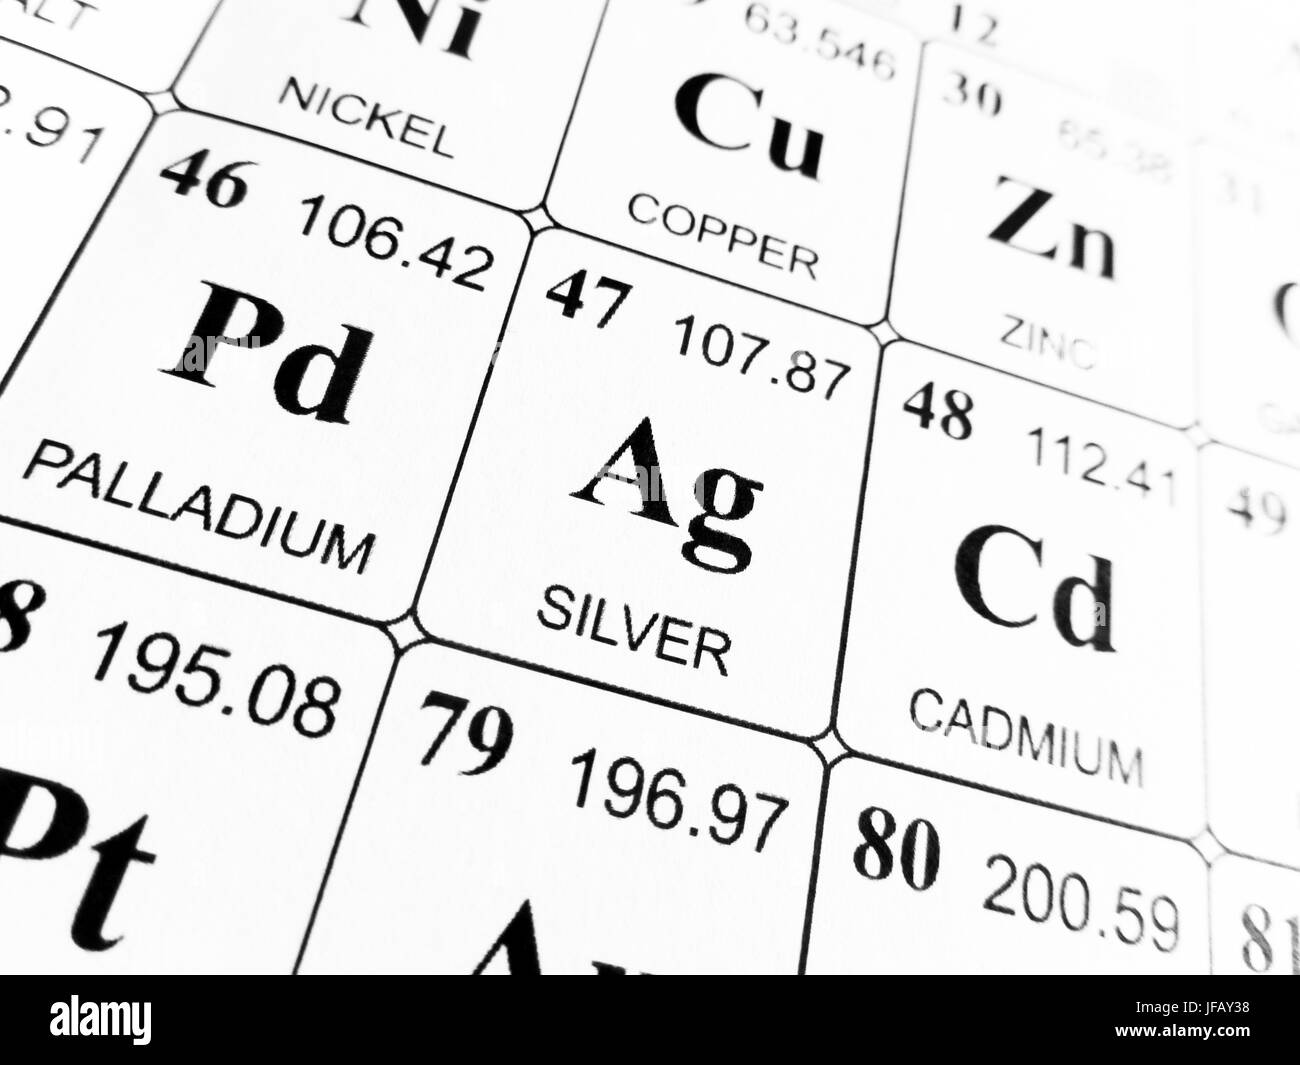 Silver on the periodic table of the elements stock photo 147143564 silver on the periodic table of the elements urtaz Image collections